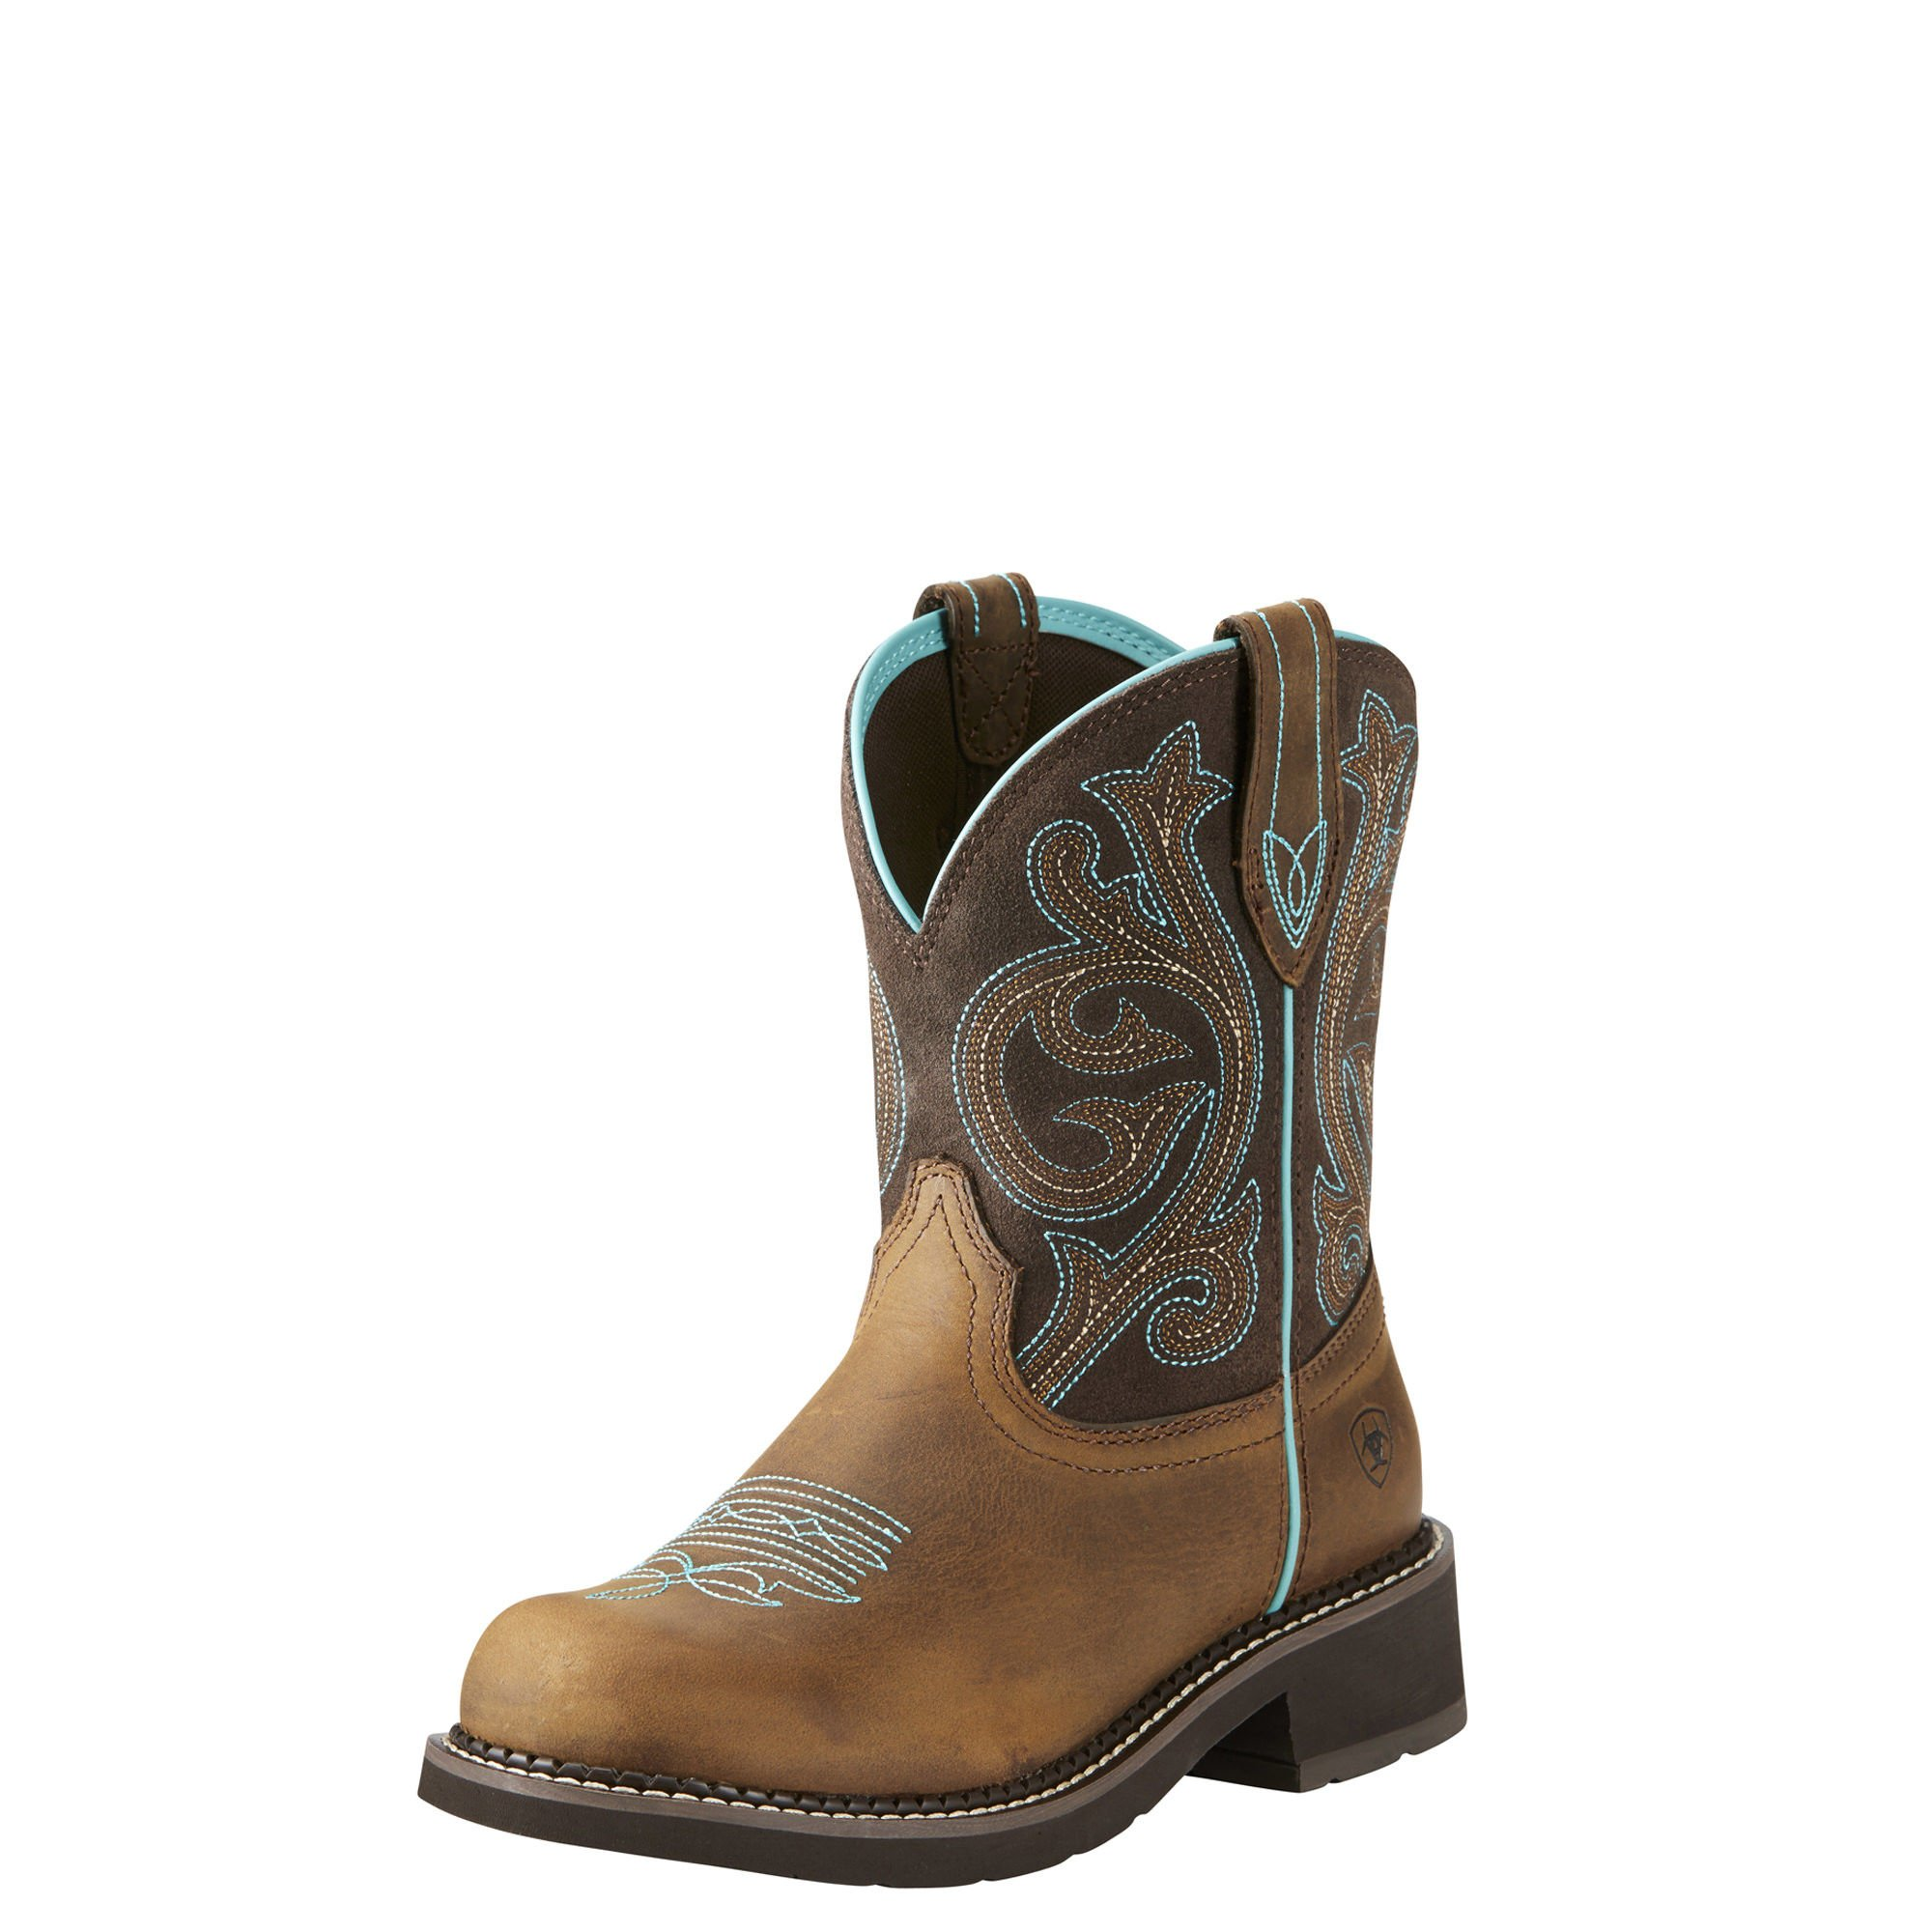 ARIAT WOMEN Fatbaby Collection Western Cowboy Boot, Distressed Brown/Fudge, 10 B US